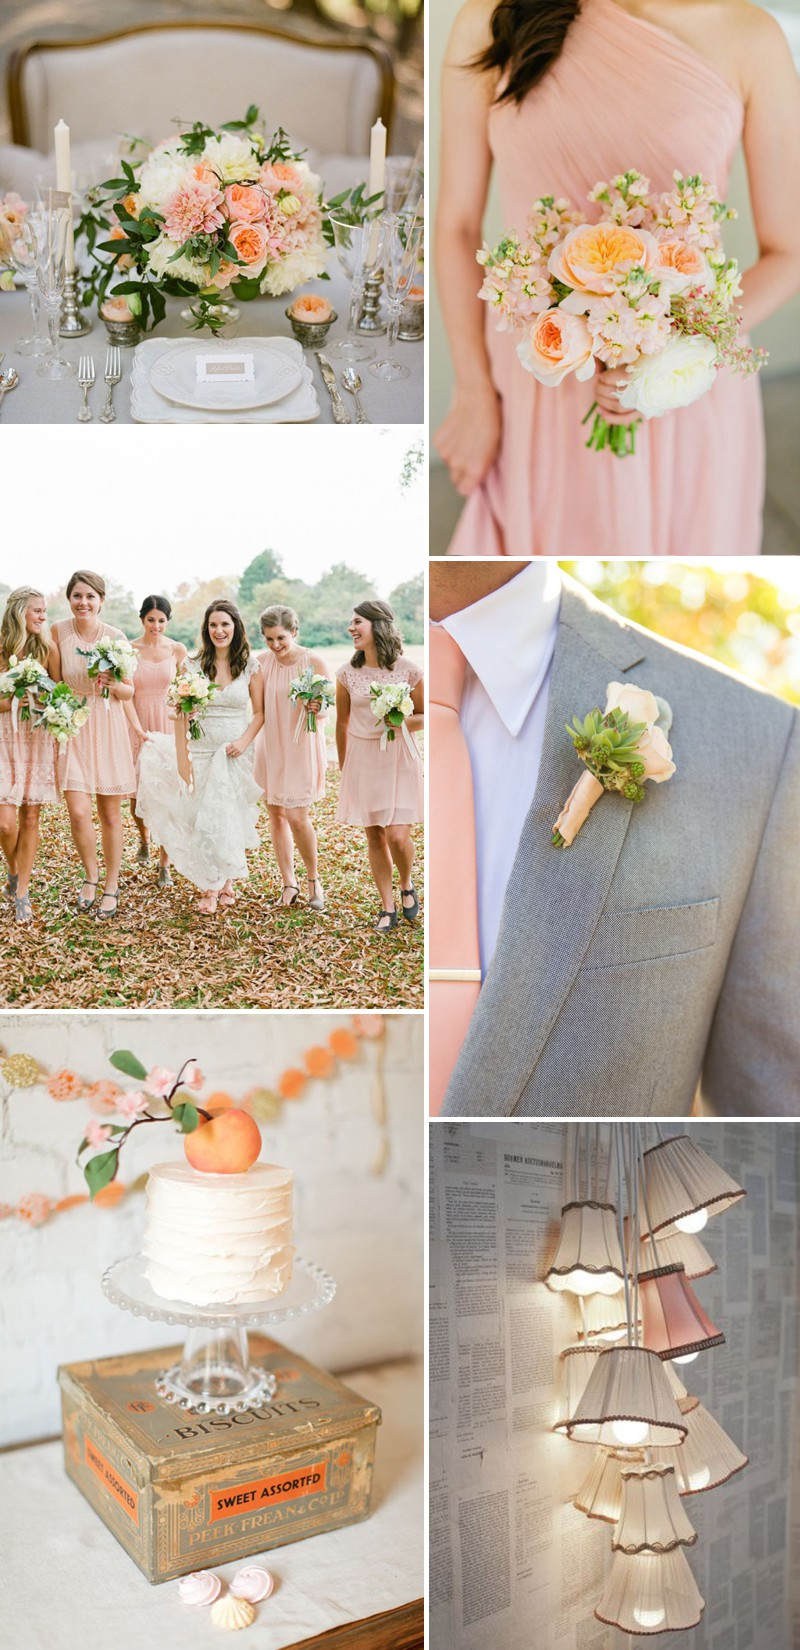 How To Create A Peach Colour Themed Wedding Using Flowers, Bridesmaids, Cakes And Decor._0004